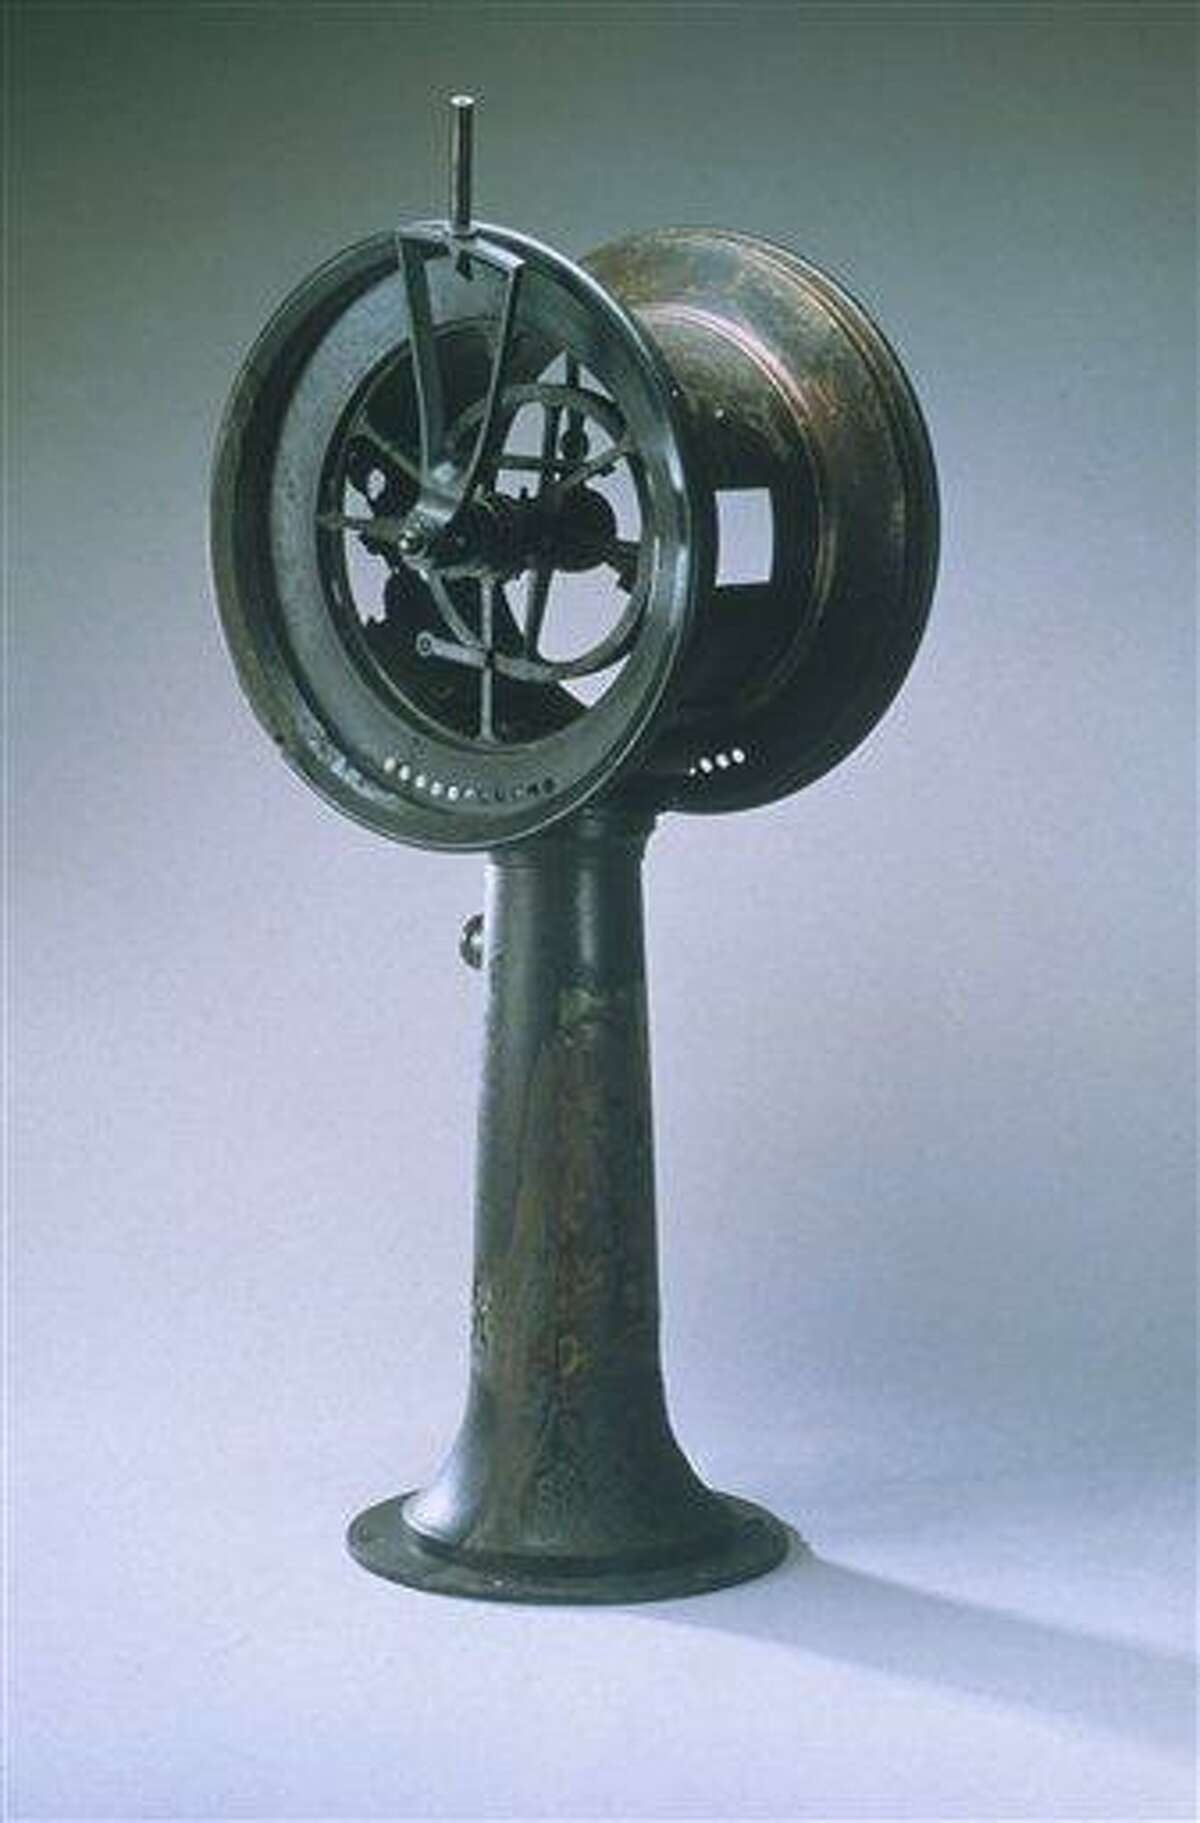 This October 19, 2011, image provided by RMS Titanic, Inc. shows a ship's telegraph from the Titanic, which was recovered from the ocean floor during an expedition to the site of the tragedy. The piece, along with 5,000 other artifacts, will be auctioned as a single collection on April 11, 2012, 100 years after the sinking of the ship. (AP Photo/RMS Titanic, Inc.)